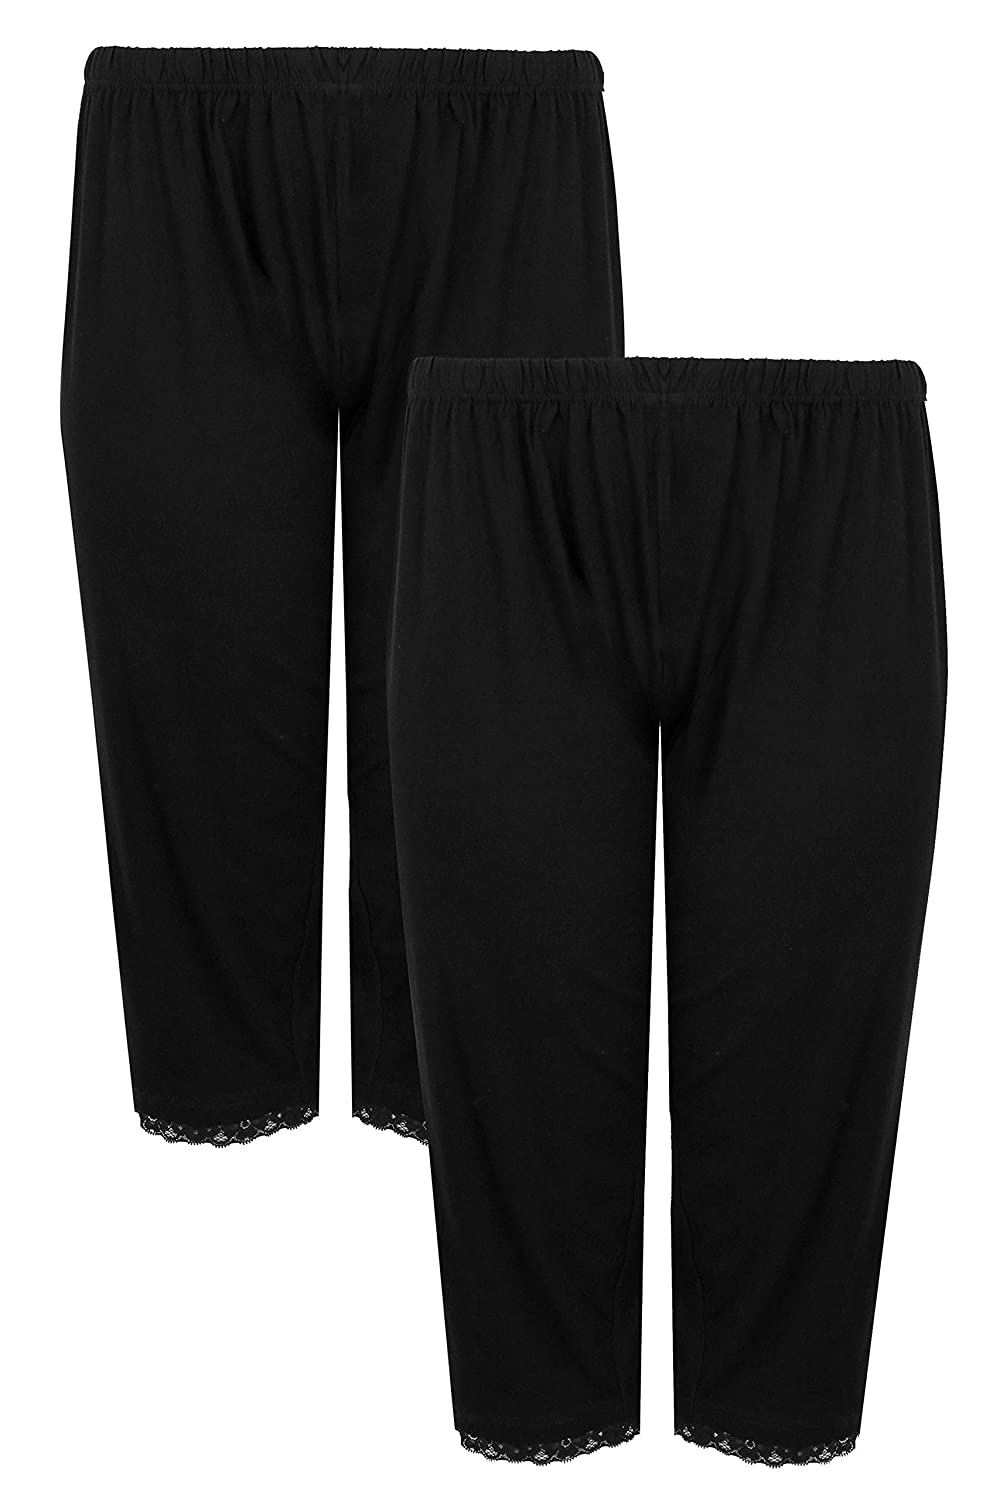 Yours Clothing Womens Plus Size Crop Pyjama Bottoms Pack of 2